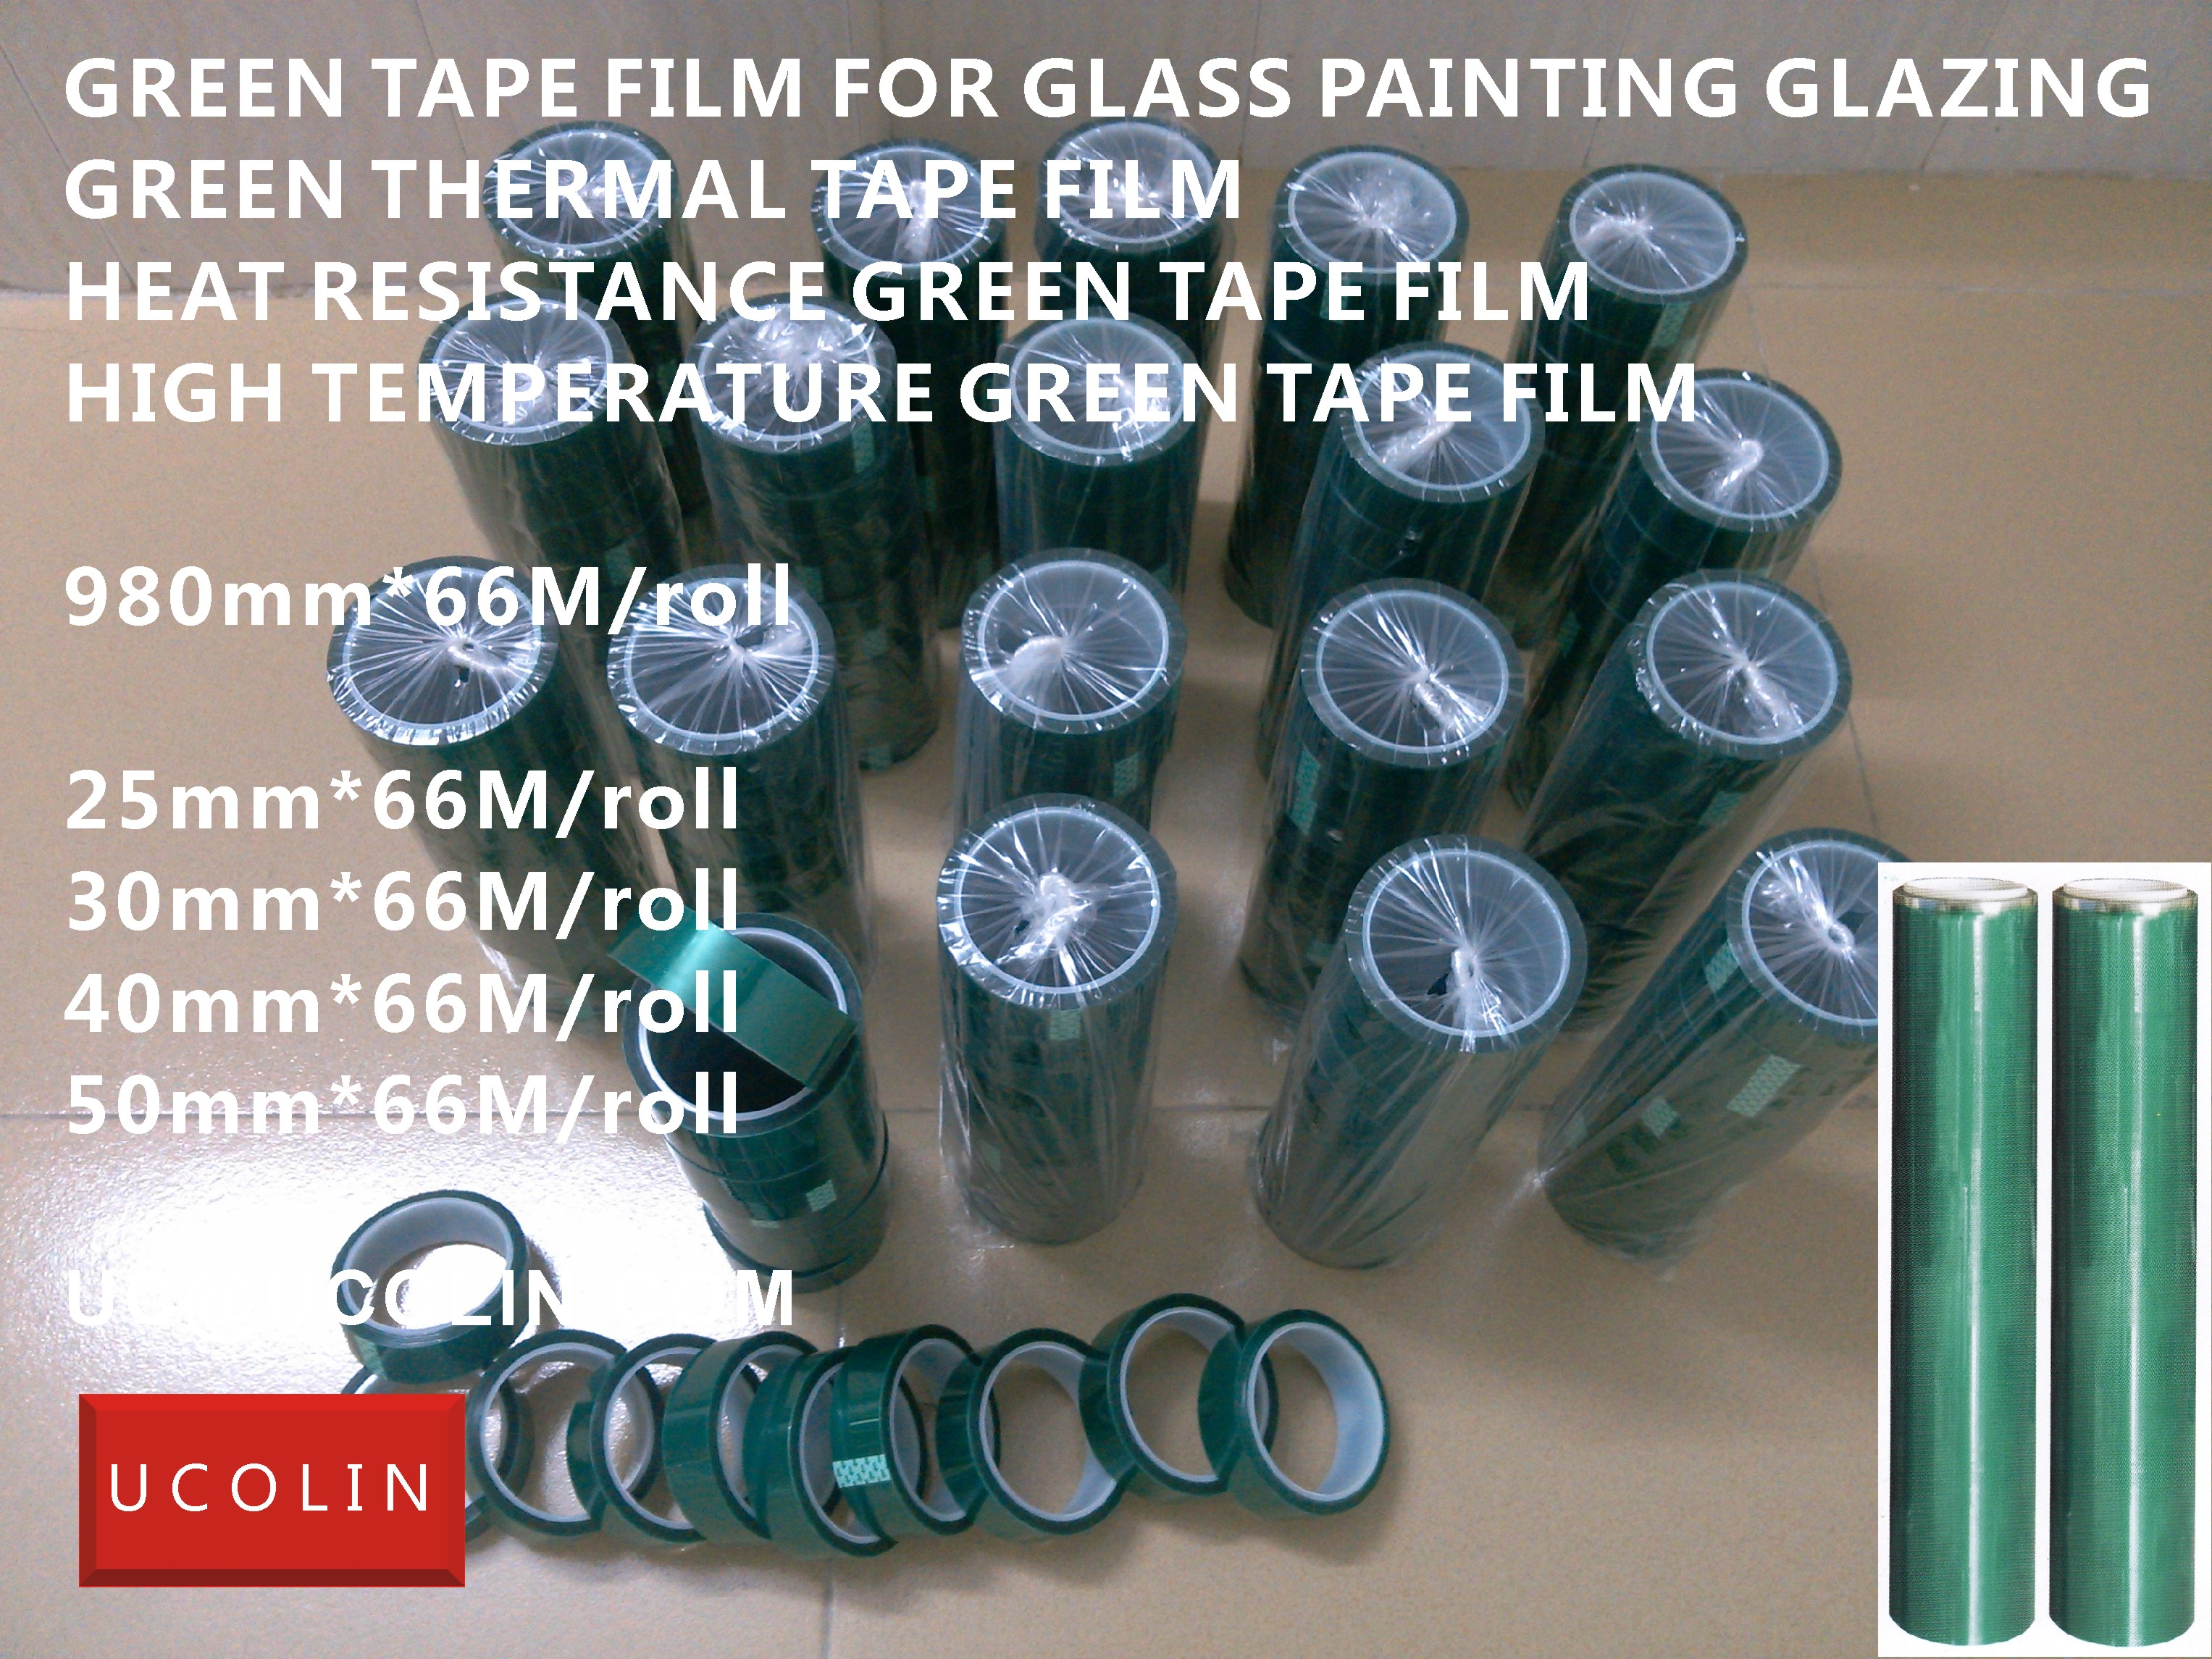 Heat Resistance Protective Green Tape Film for Glass Painting Glazing